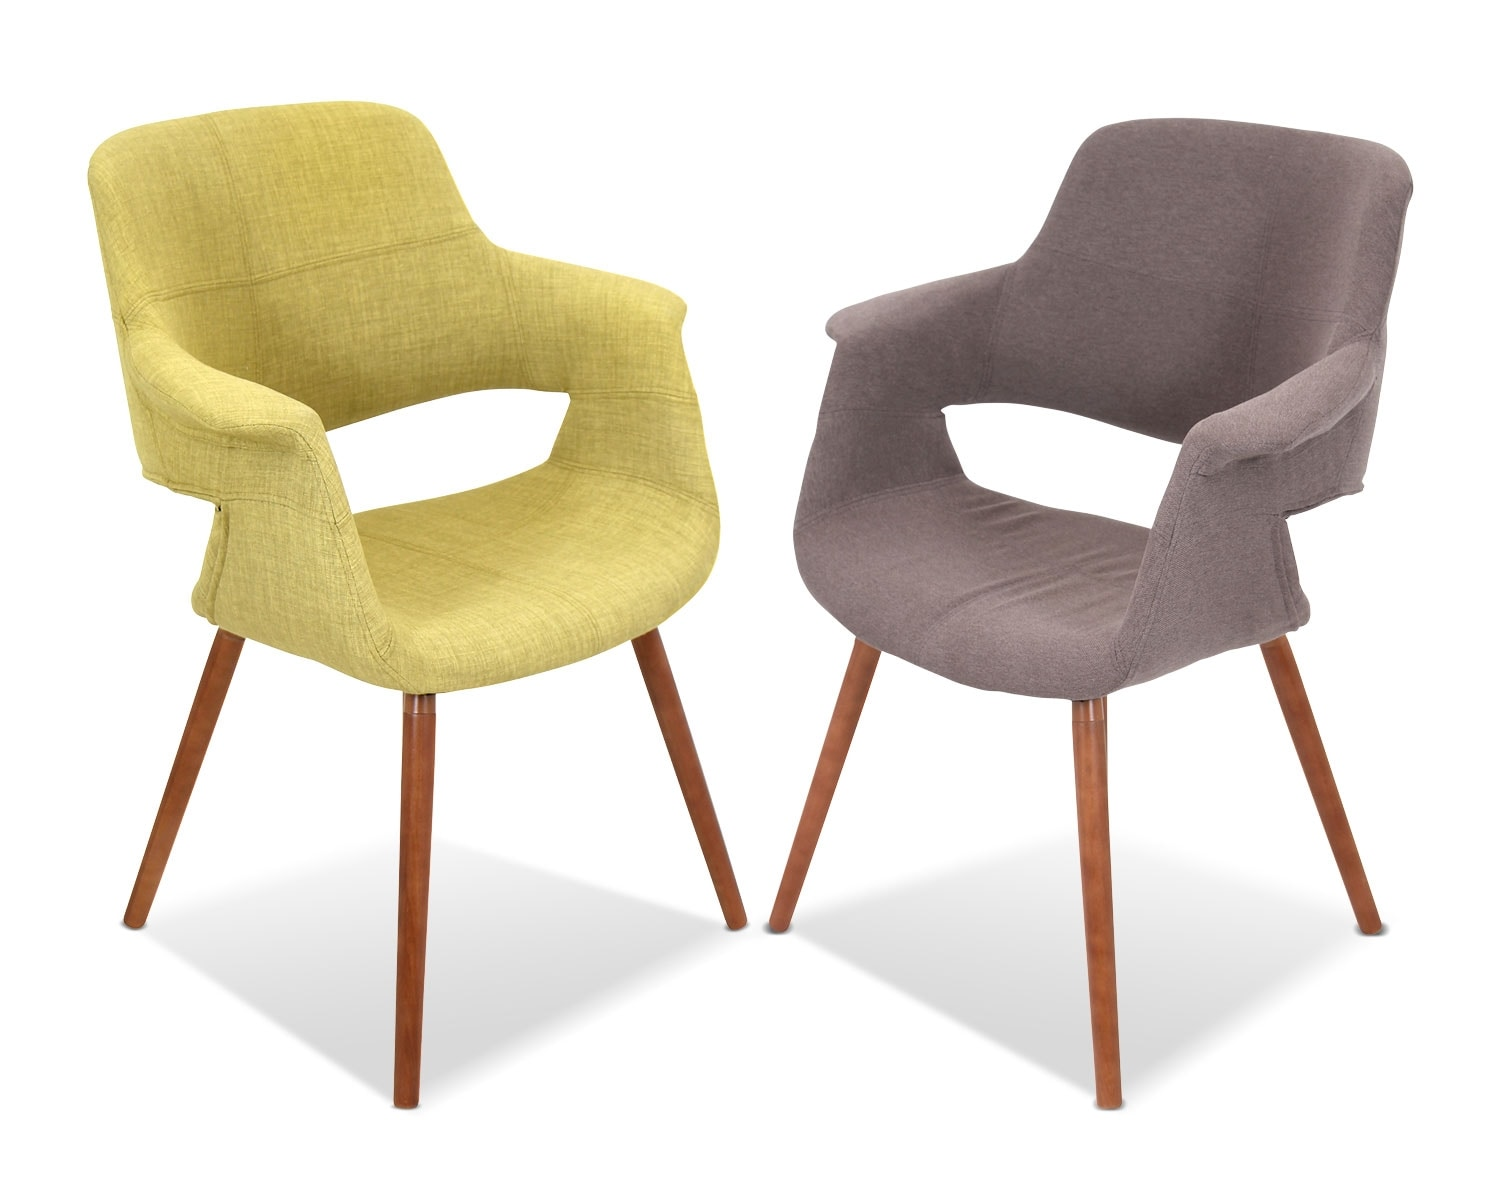 The Solo Accent Chair Collection